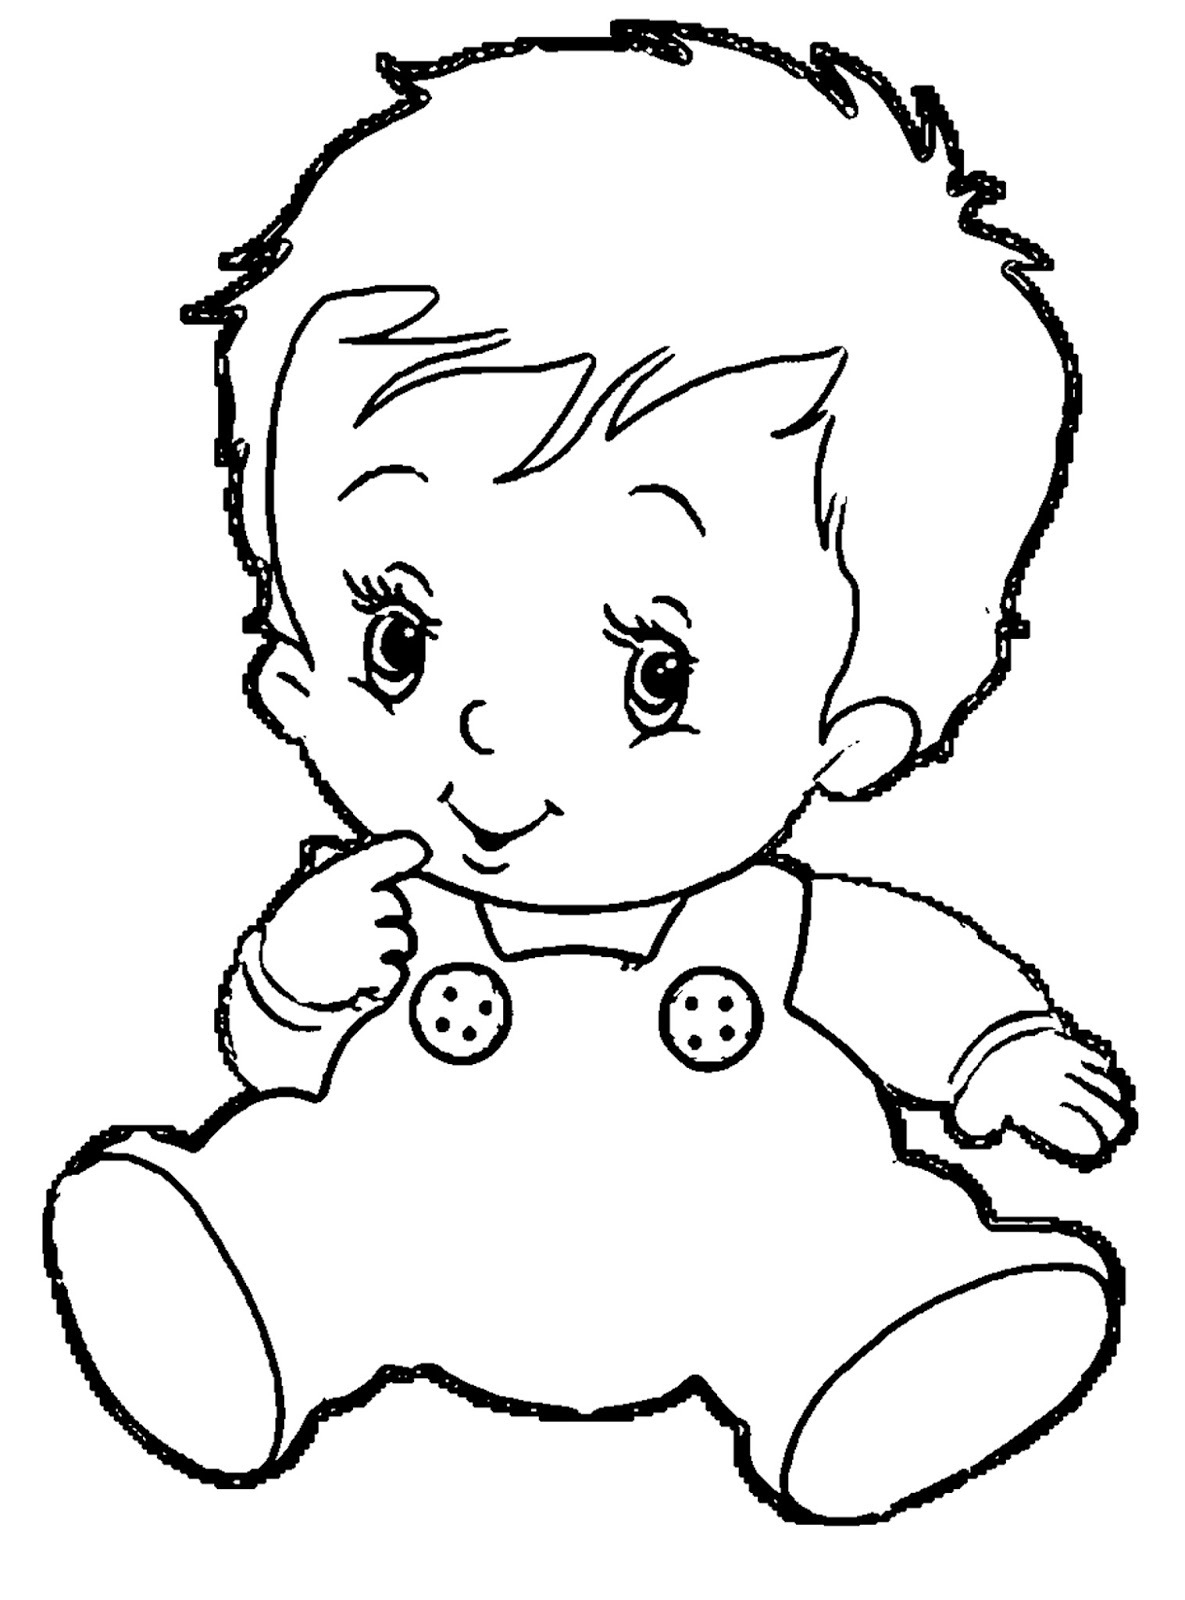 Babies clipart black and white. Infant letters baby pencil